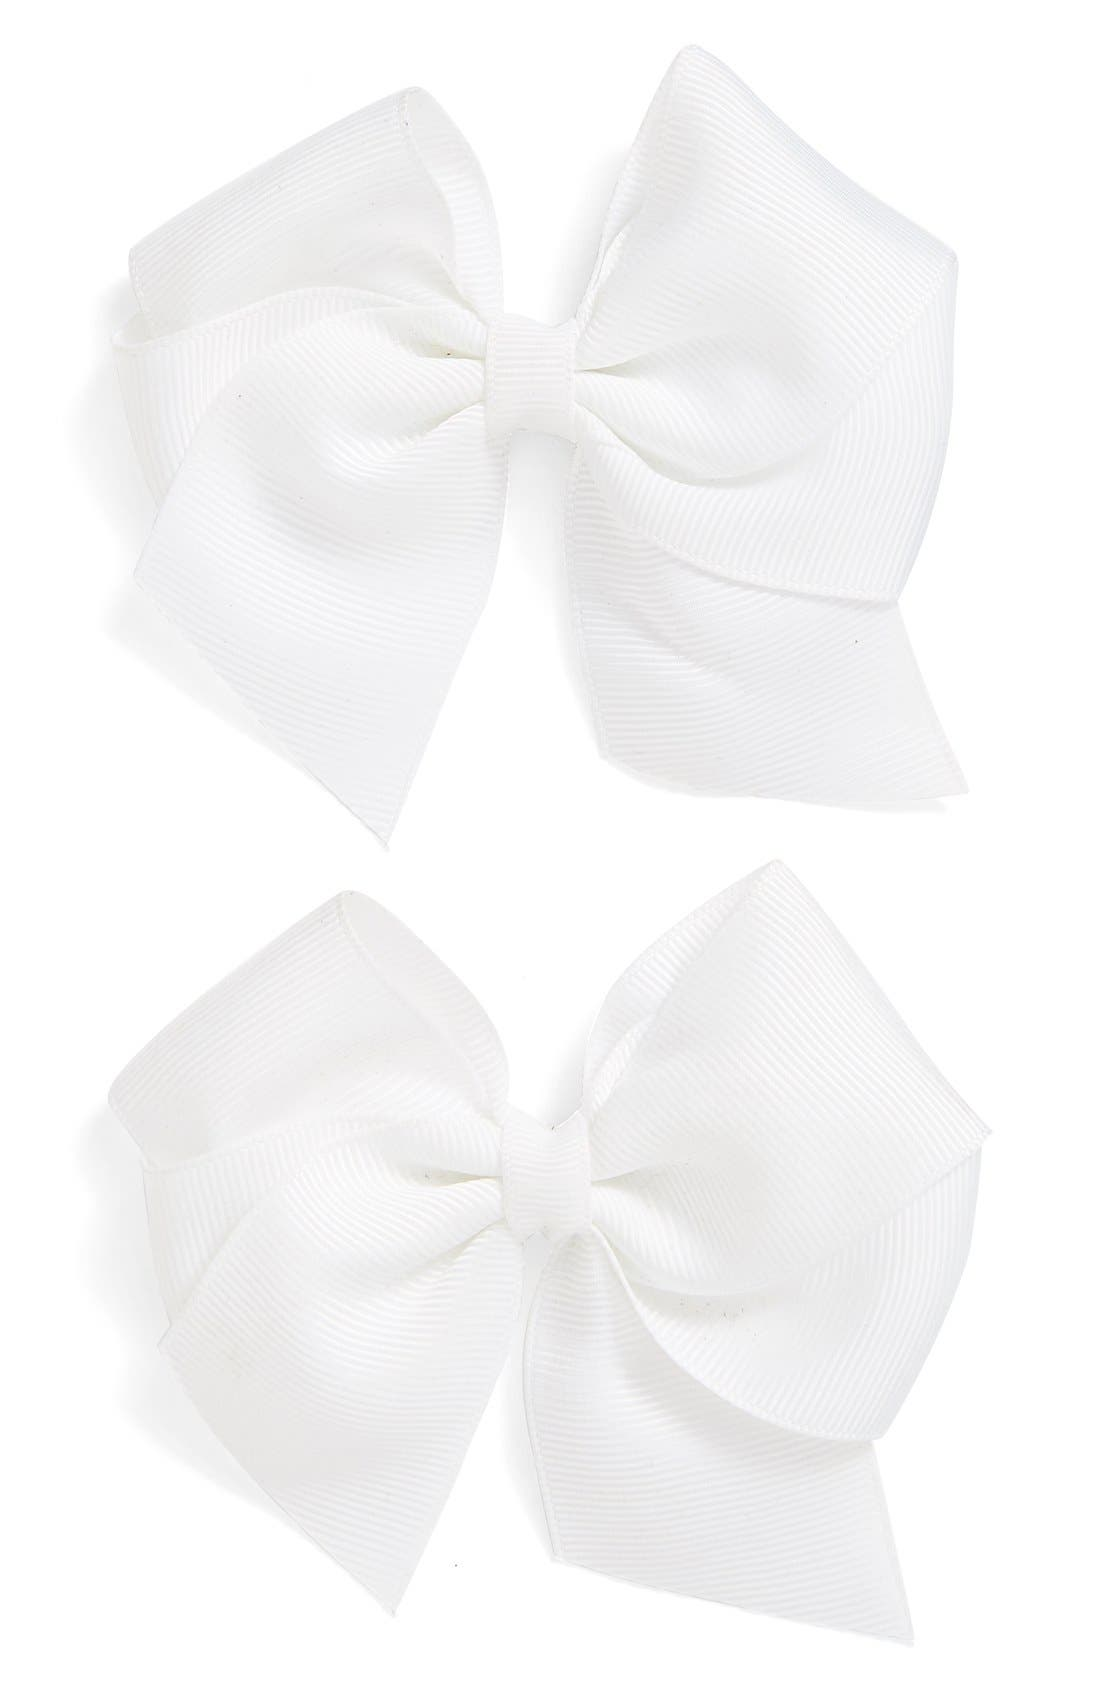 Alternate Image 1 Selected - PLH Bows & Laces Bow Clips (Set of 2) (Baby Girls)